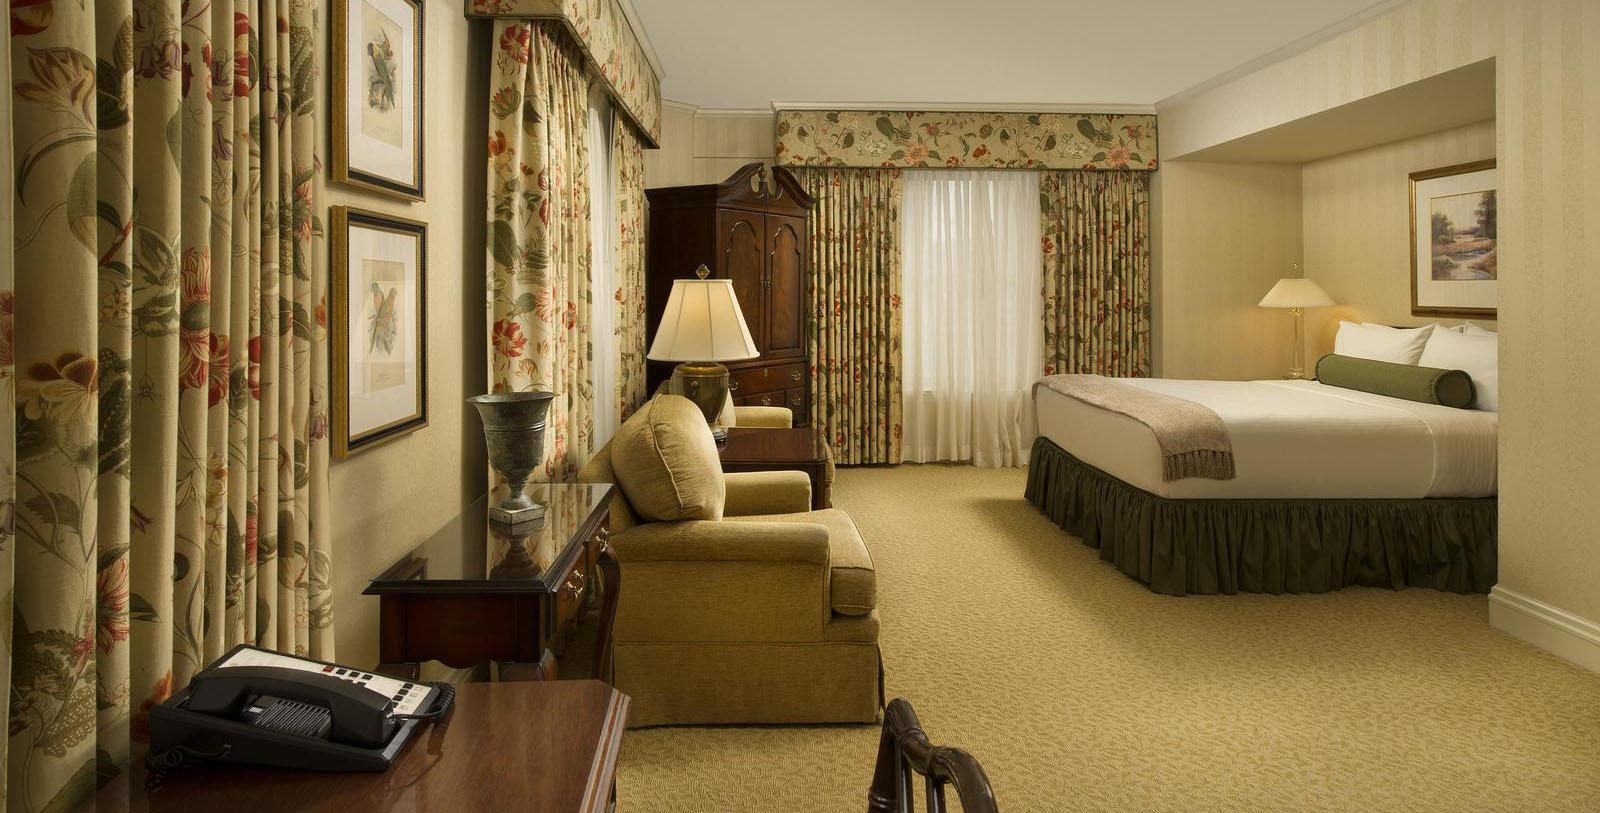 Image of Guestroom Interior, Mayflower Park Hotel, Seattle, Washington, 1927, Member of Historic Hotels of America, Location Map